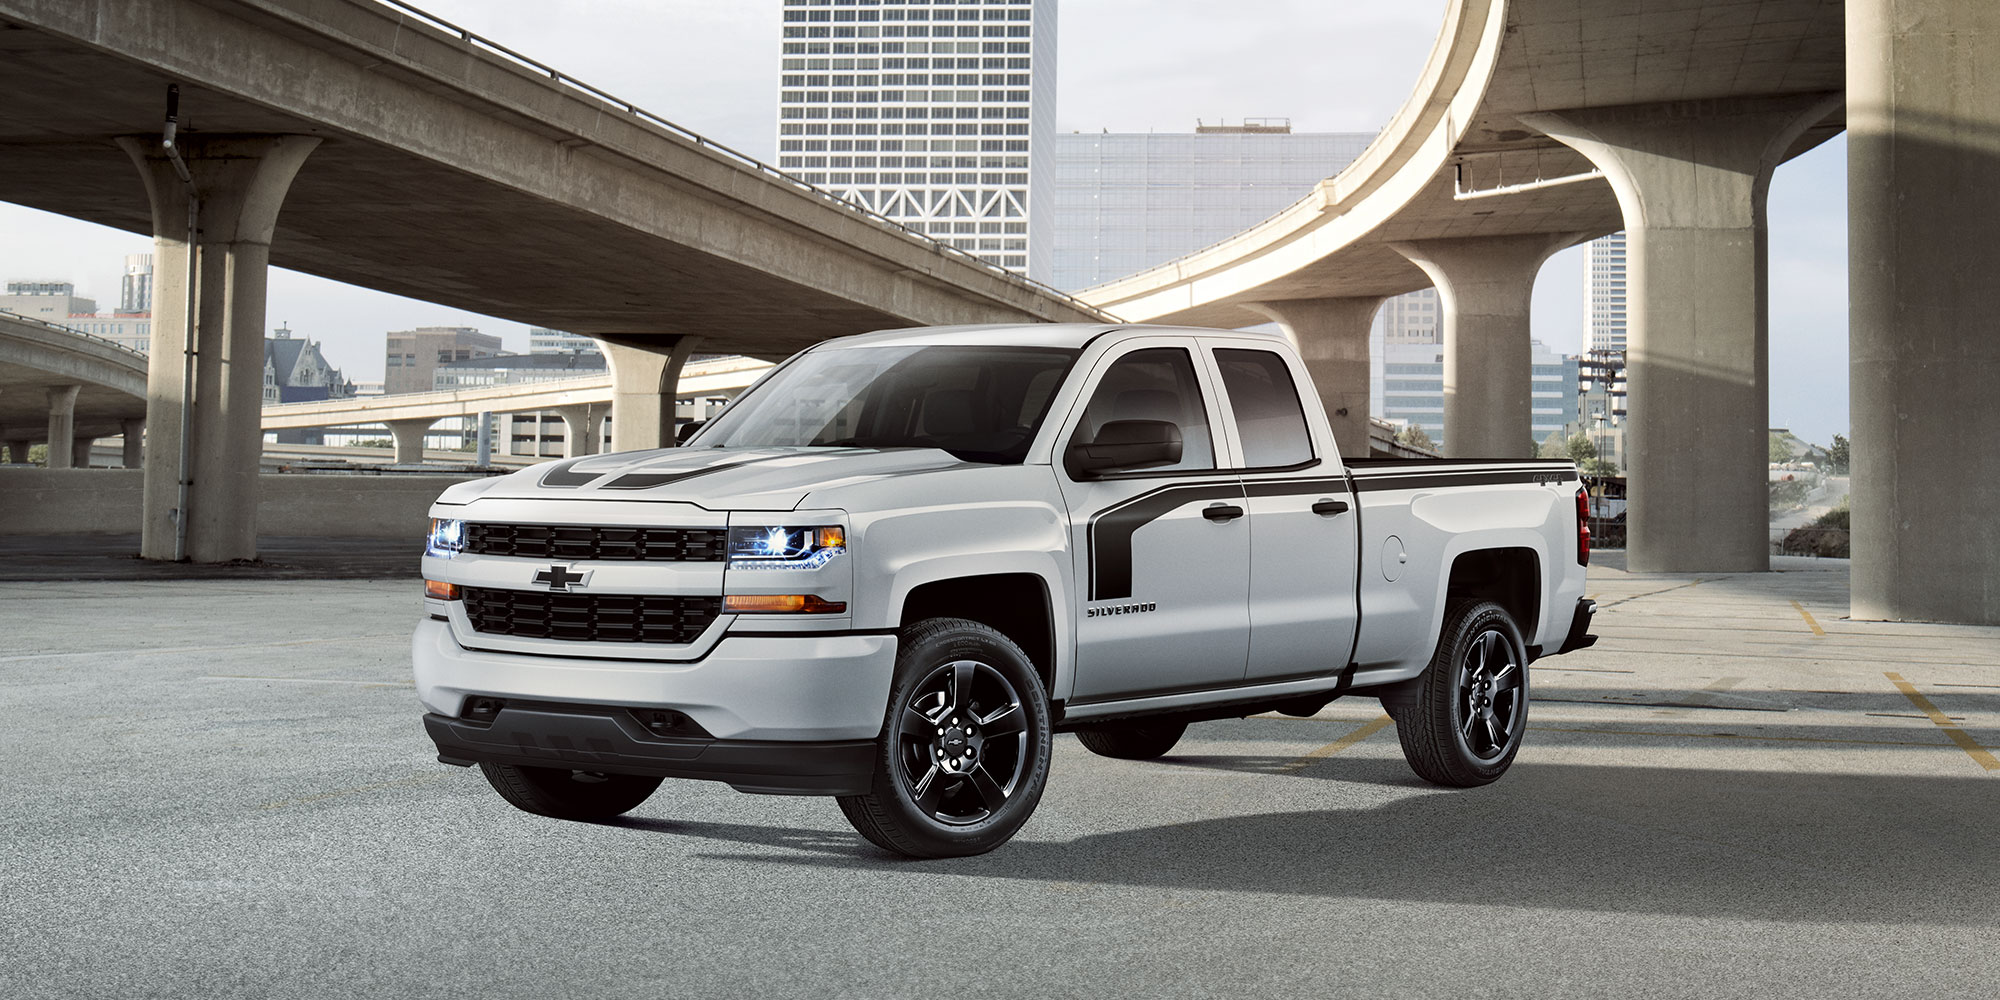 Ediciones especiales de Chevy Silverado: Lateral del Rally 1